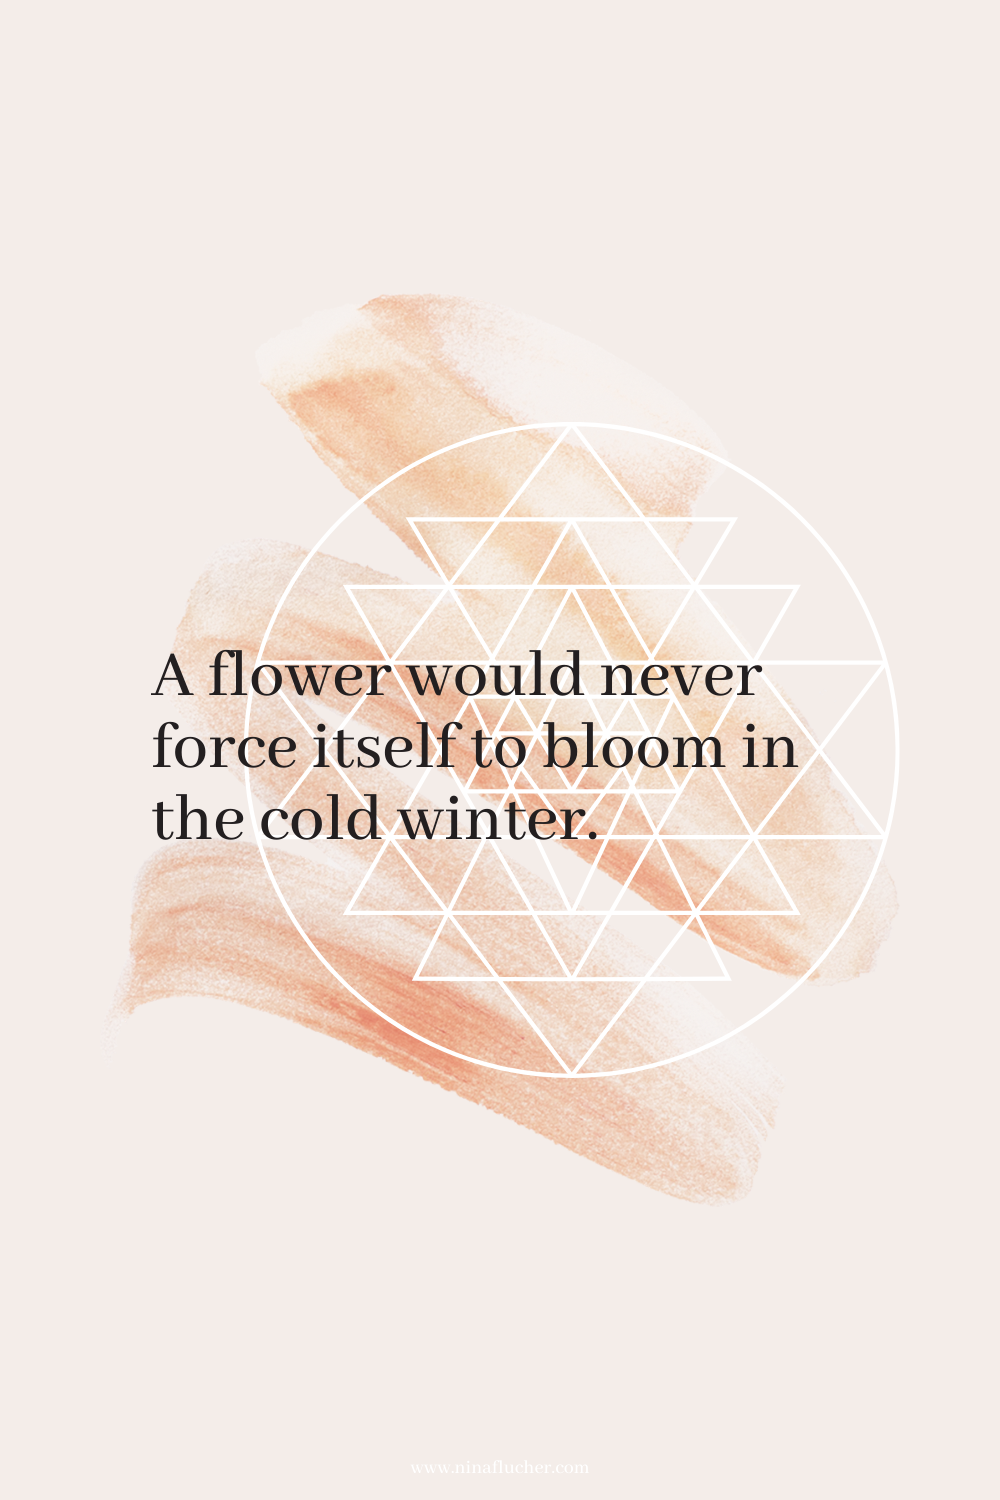 A flower would never force itself to bloom in the cold winter.